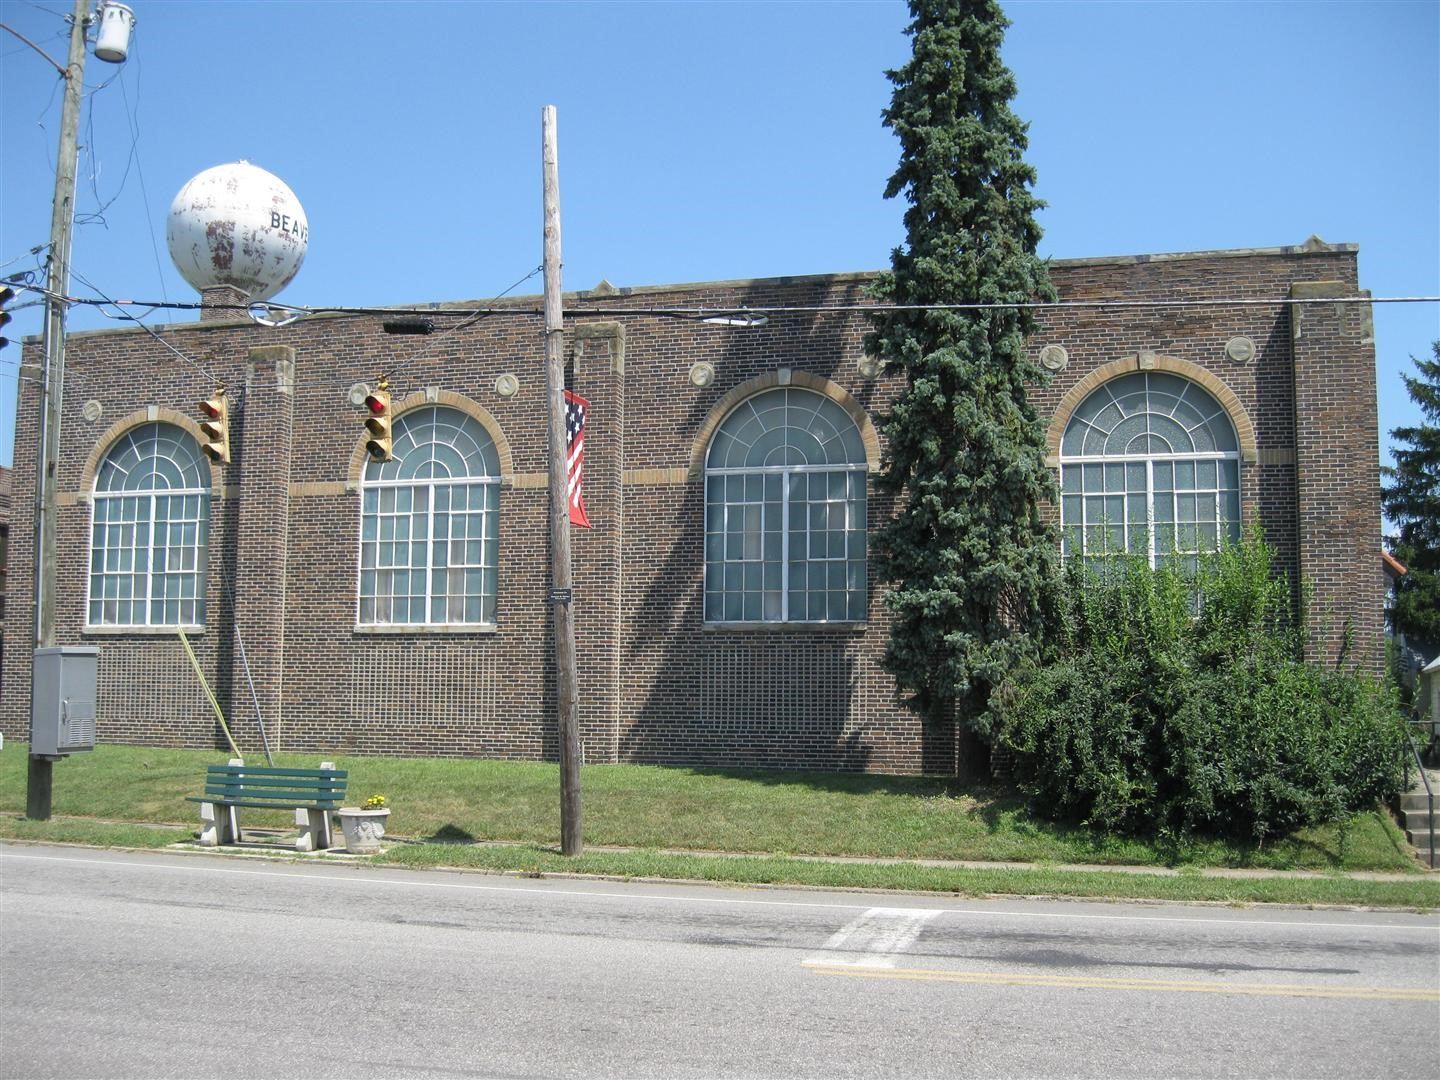 Beaver High School Gymnasium